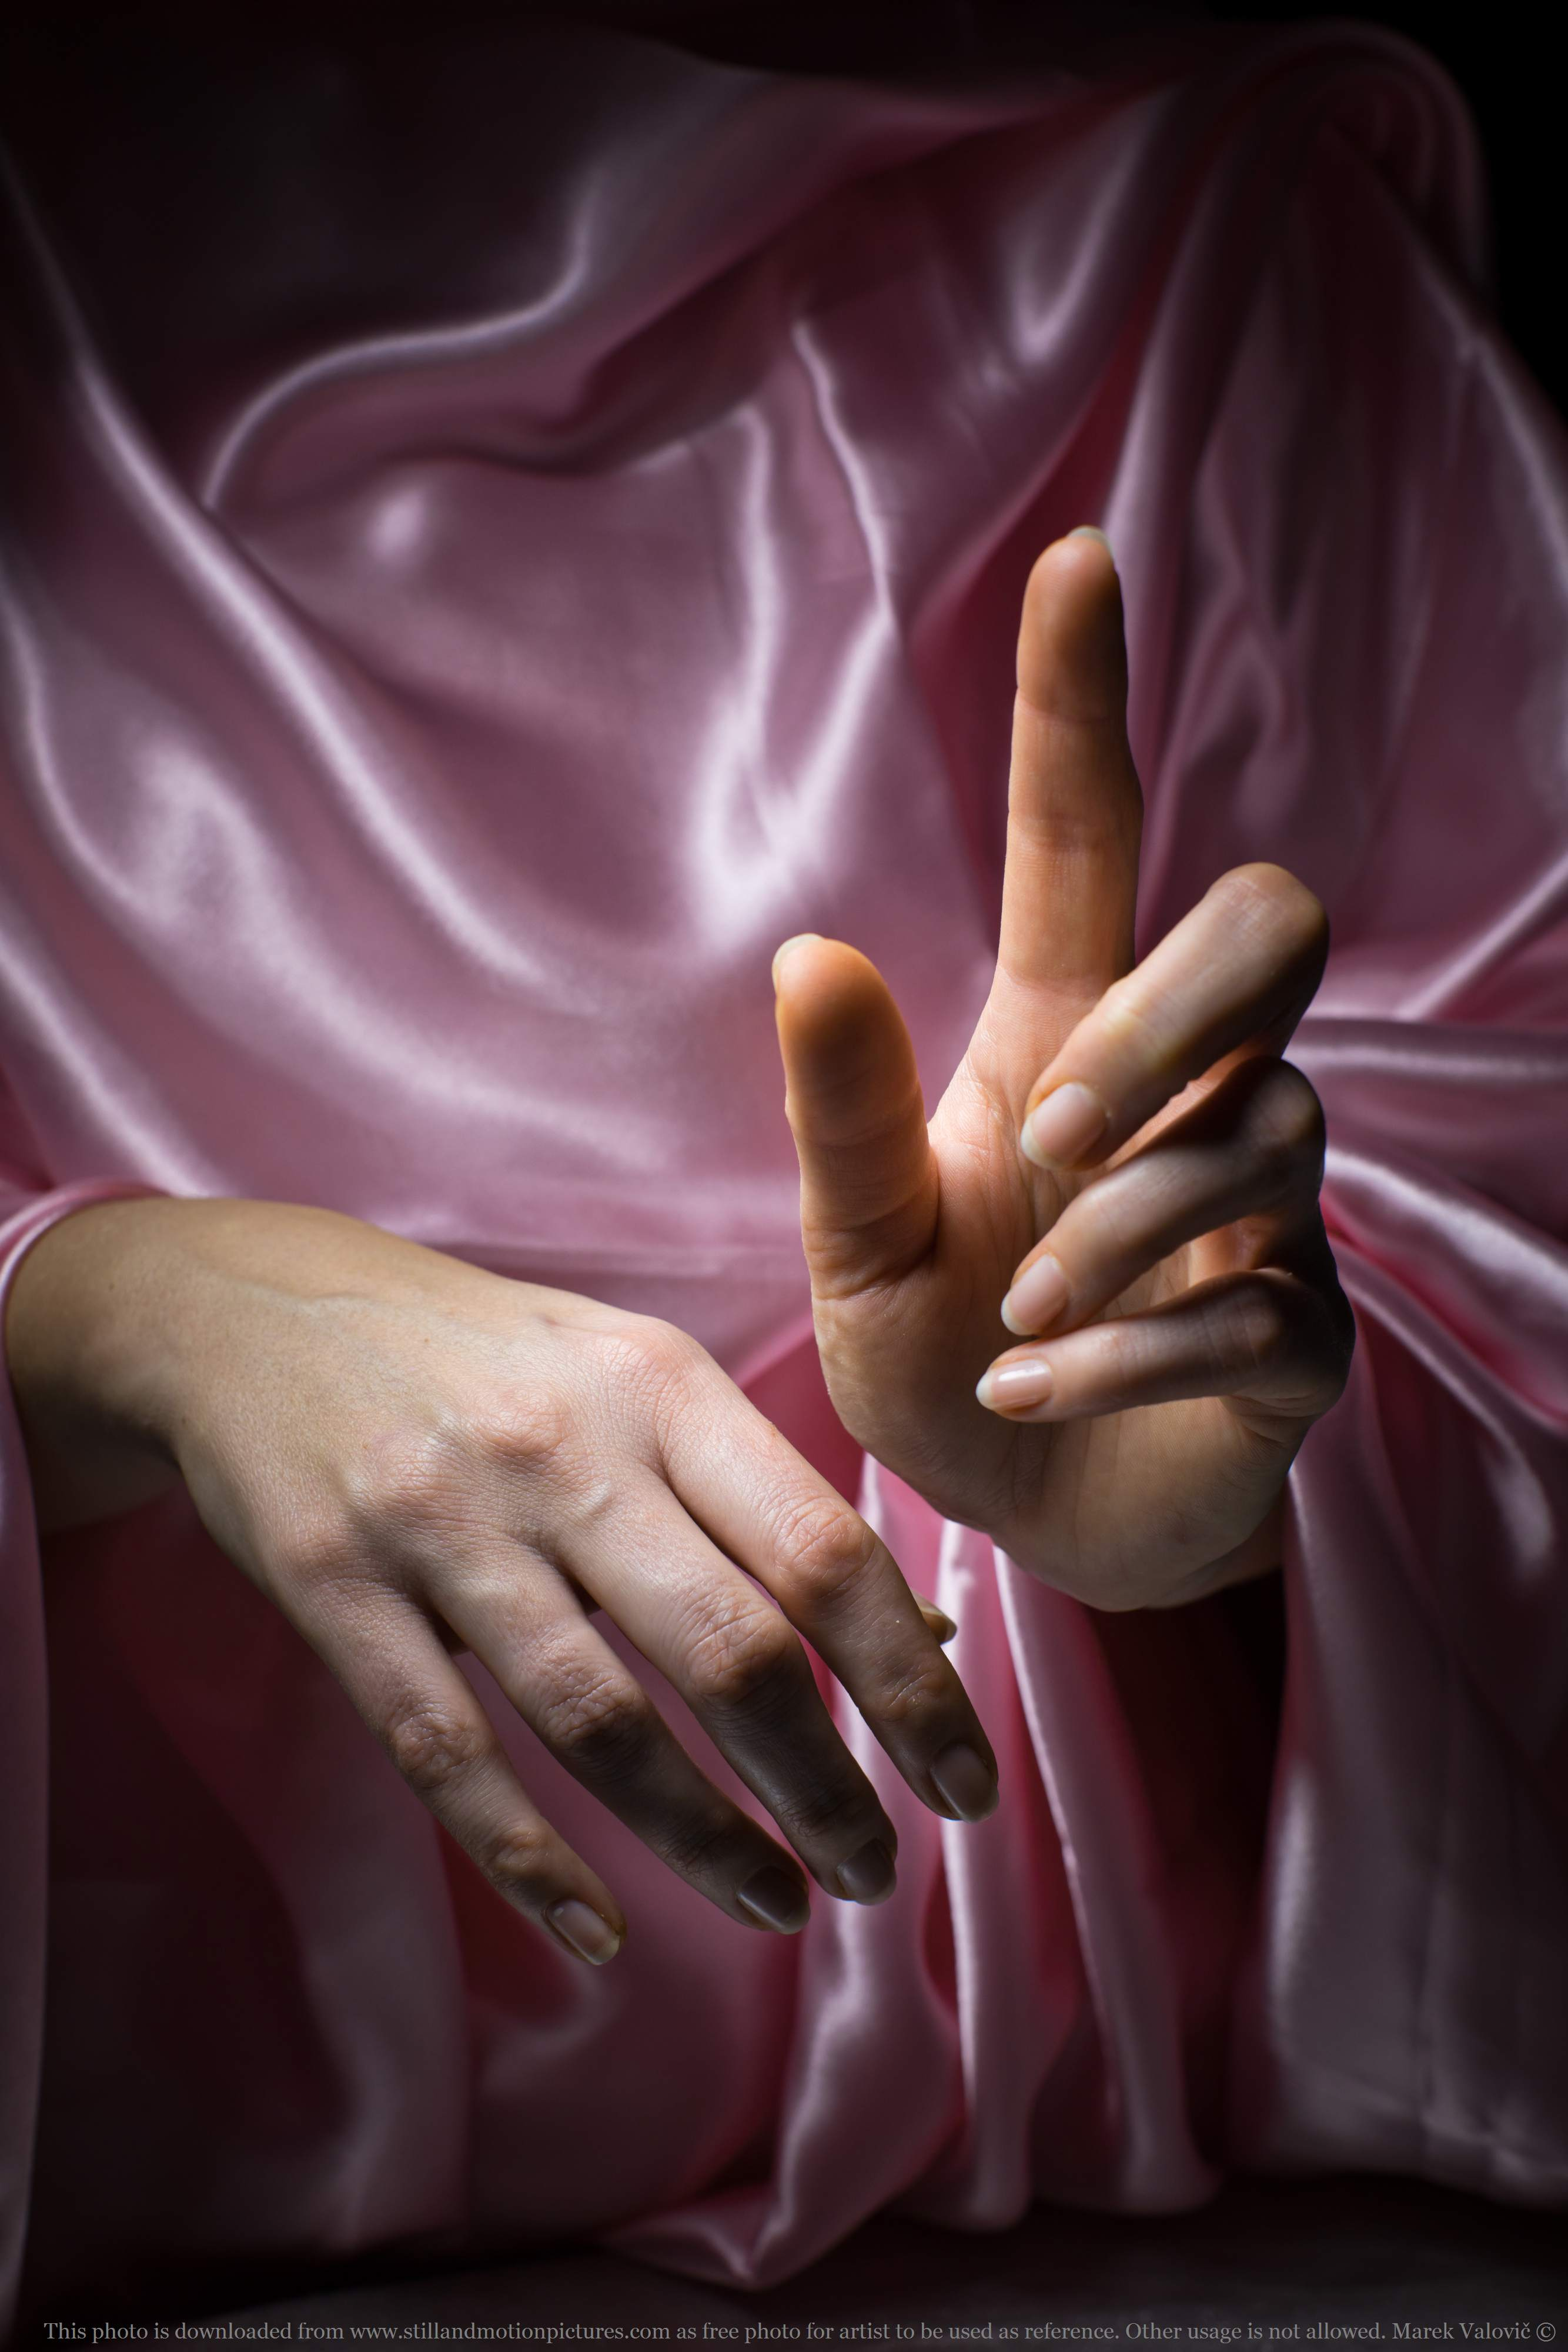 free woman's hands - sacret gesture - referefce photo for artists